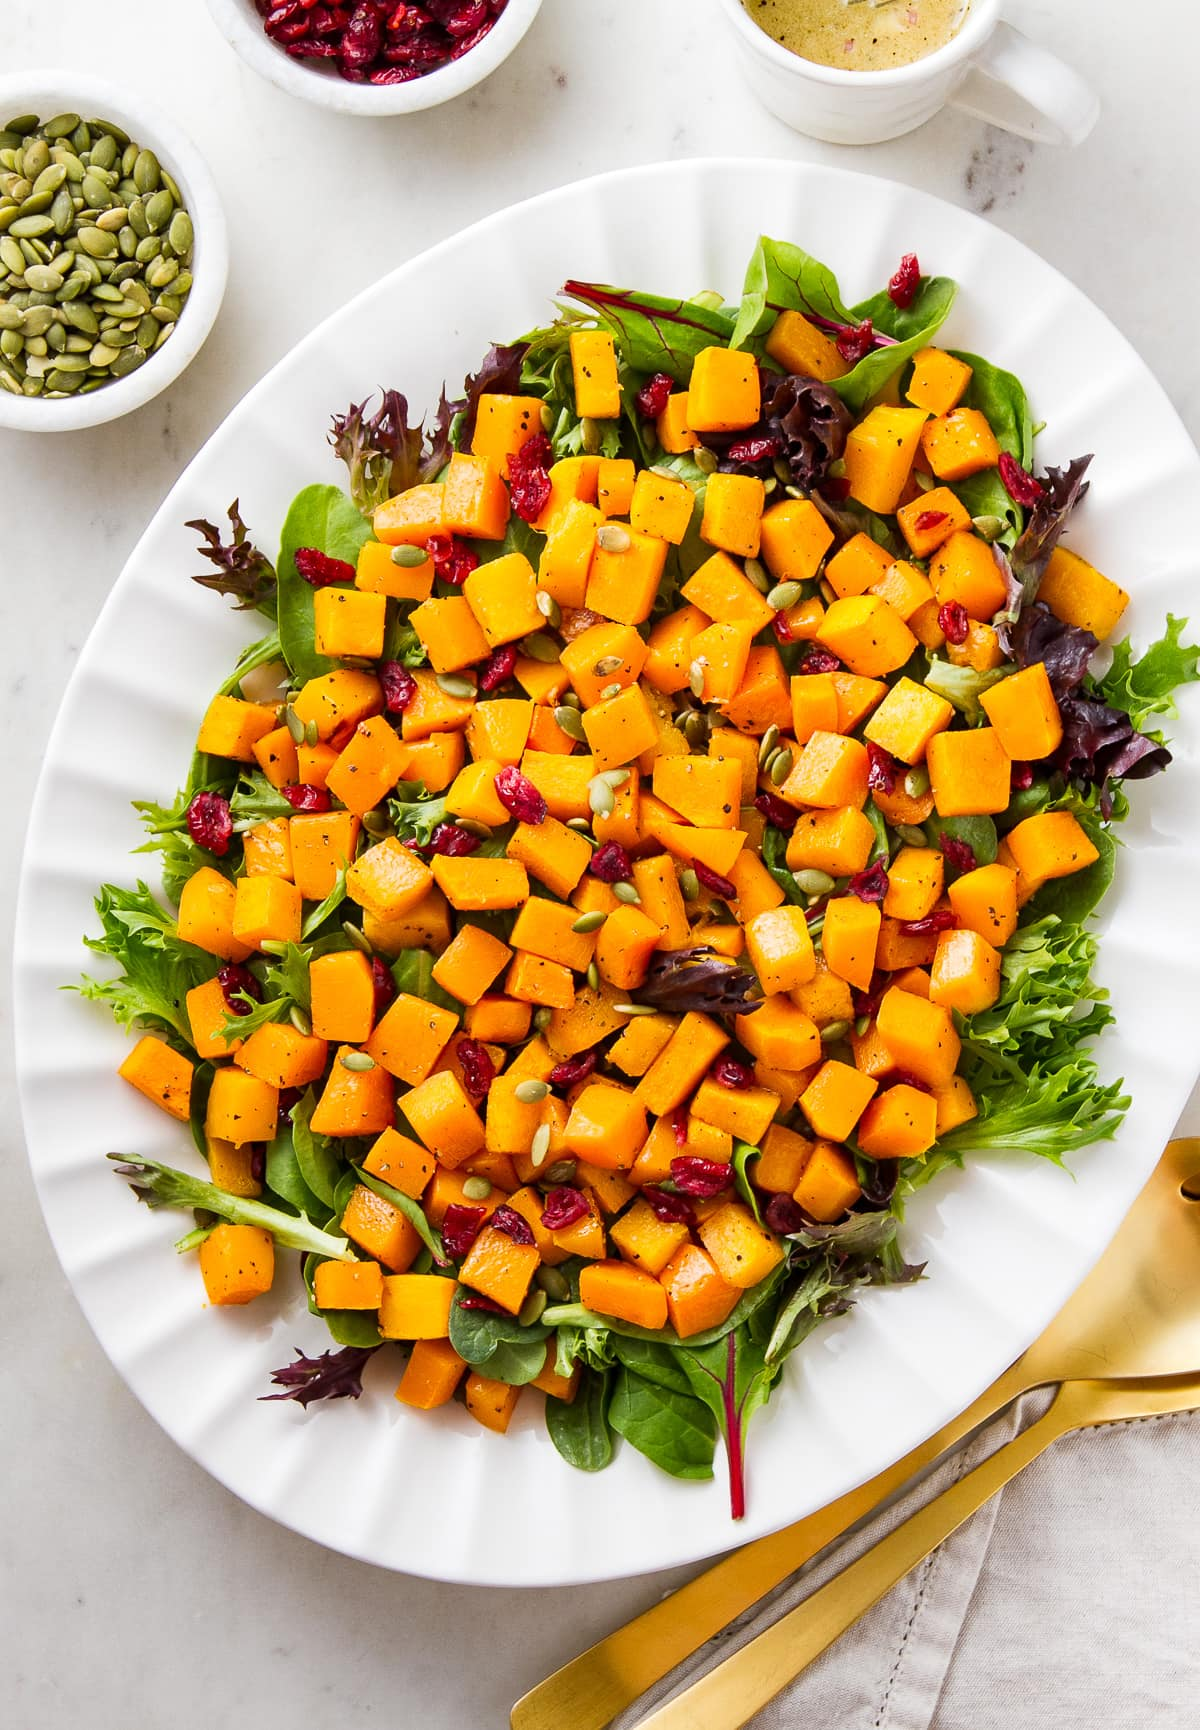 top down view of butternut squash salad with cranberries and shallot vinaigrette on a serving platter.